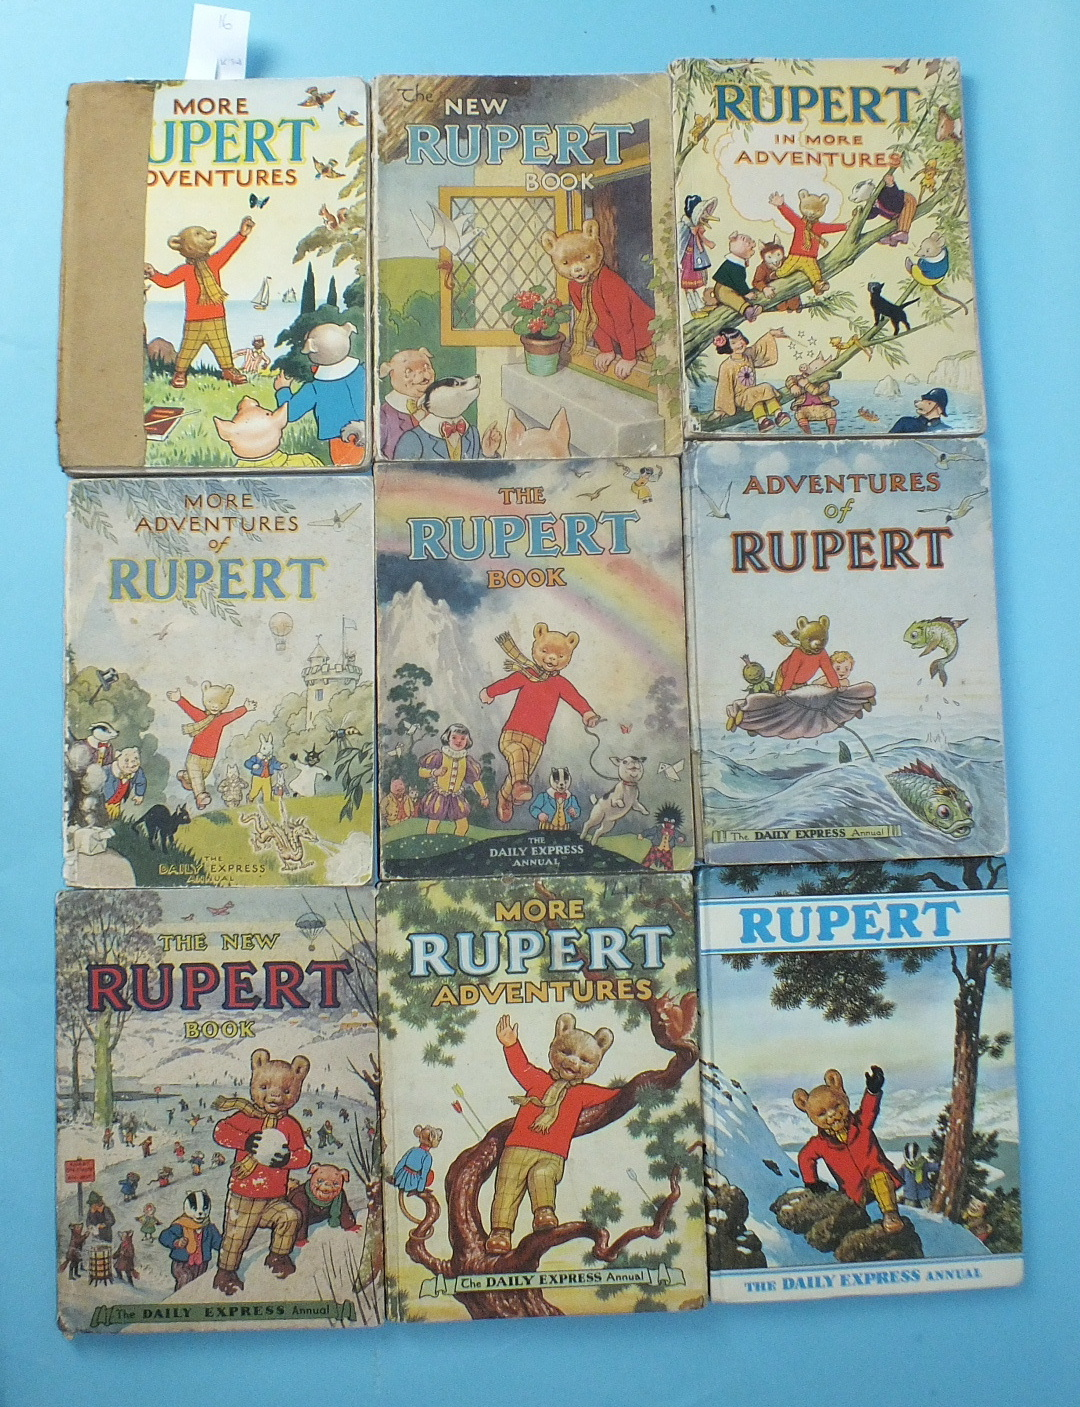 Lot 3 - Nine Rupert Annuals: More Rupert Adventures 1943, (a/f, spine taped badly), Rupert in More